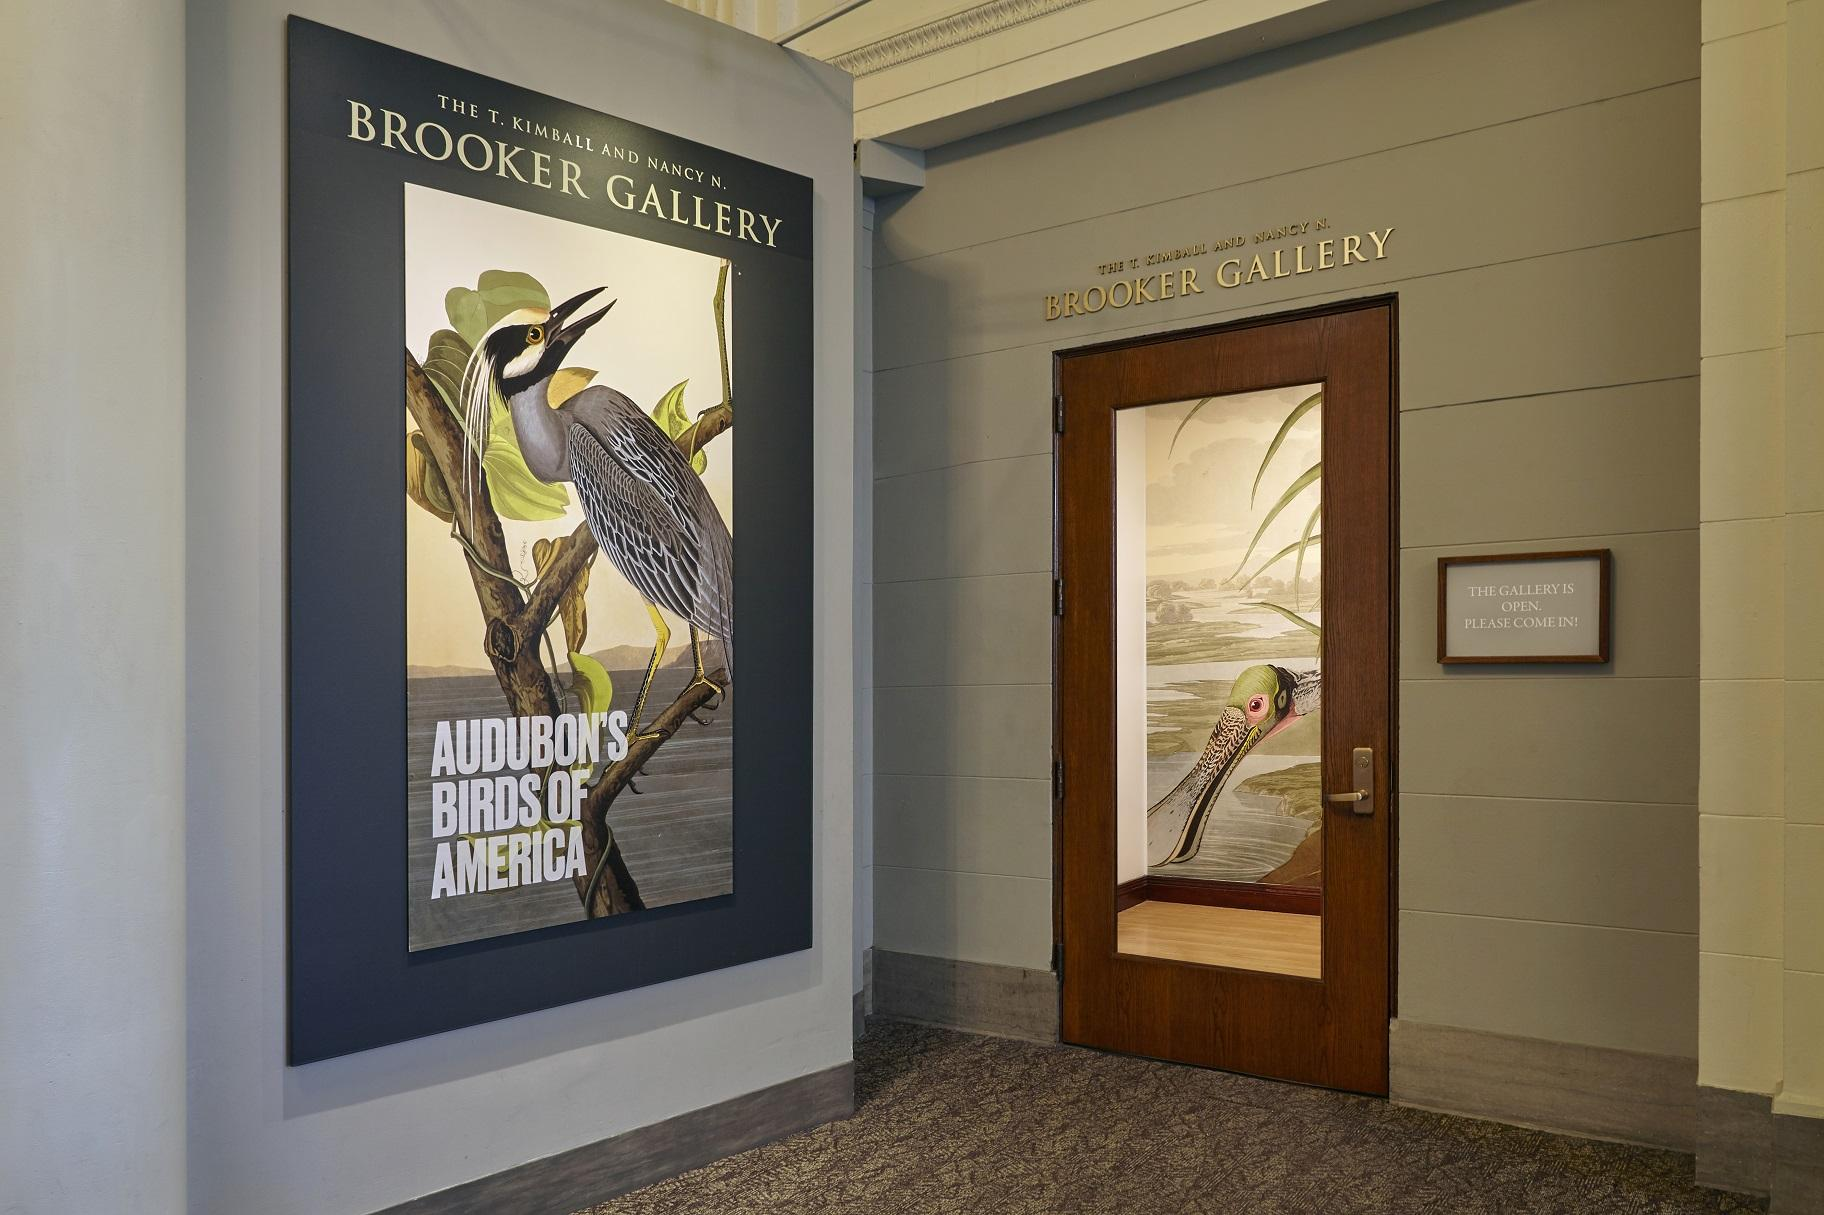 """Audubon's Birds of America"" is on display at the Field Museum through Dec. 1. (Michelle Kuo / Field Museum)"